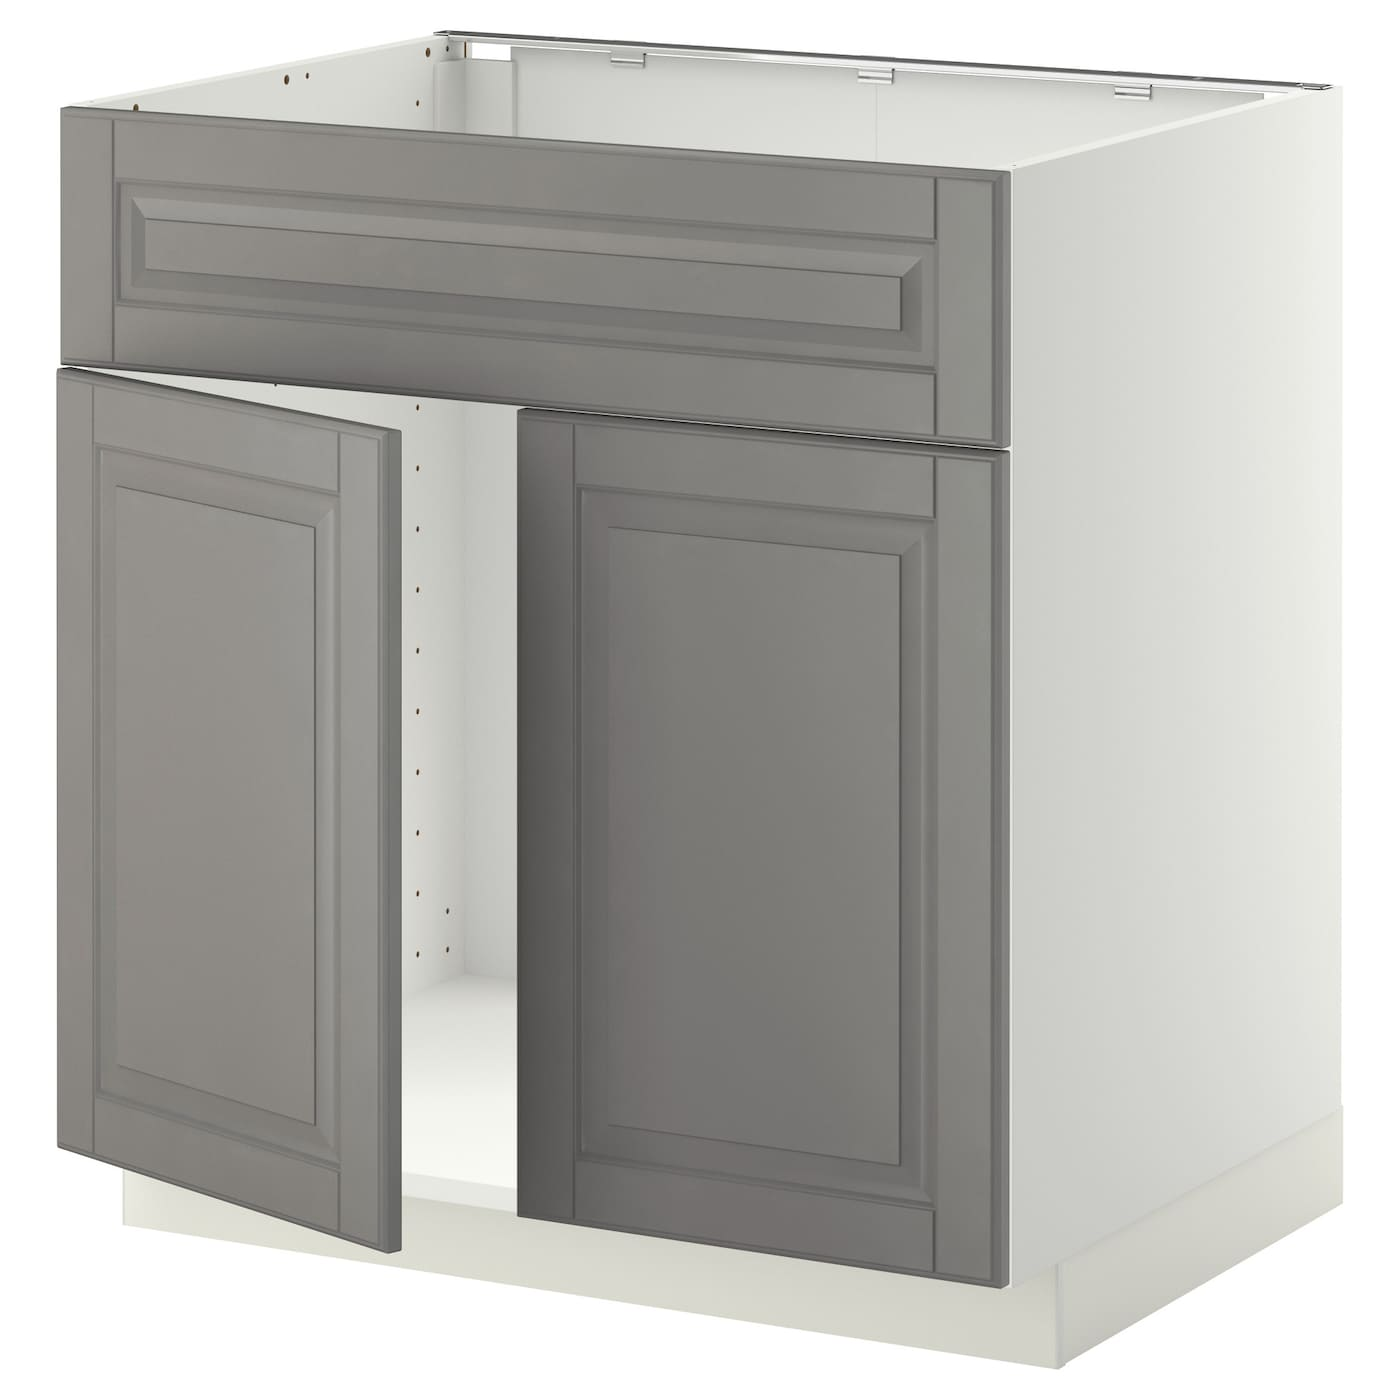 Metod base cabinet f sink w 2 doors front white bodbyn - Ikea cabinet doors on existing cabinets ...